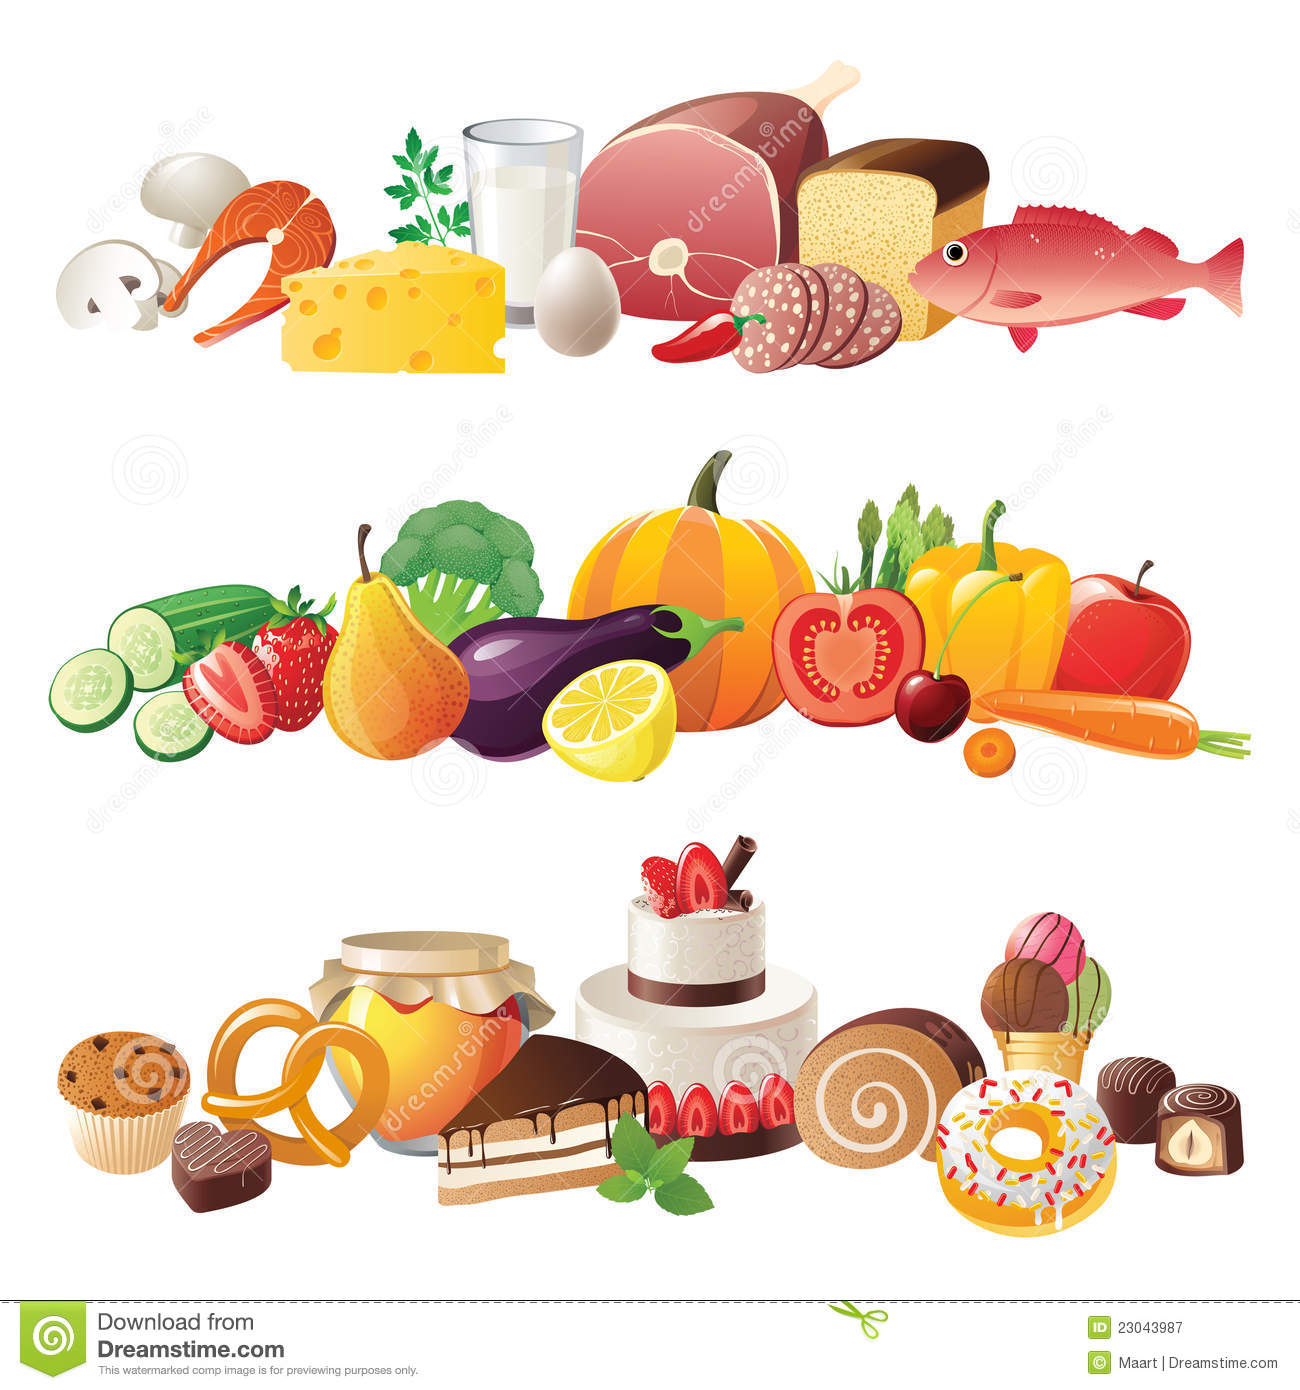 Food Clipart Borders Free Download.